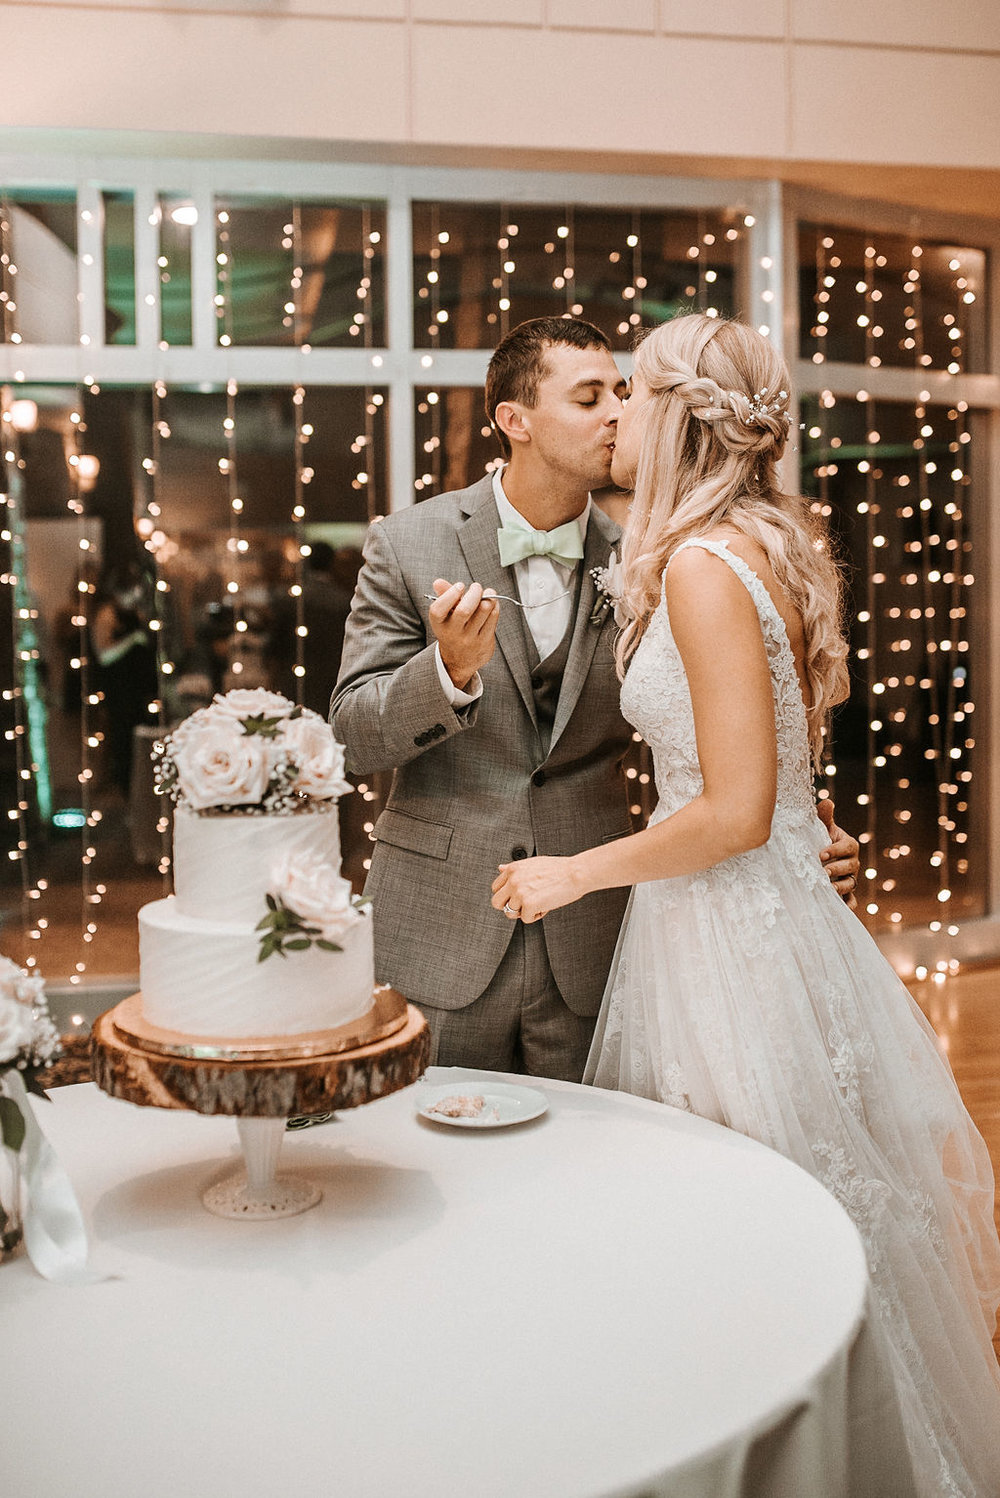 Bride and Groom Kissing While Cutting the Cake at The Woodlands at Algonkian